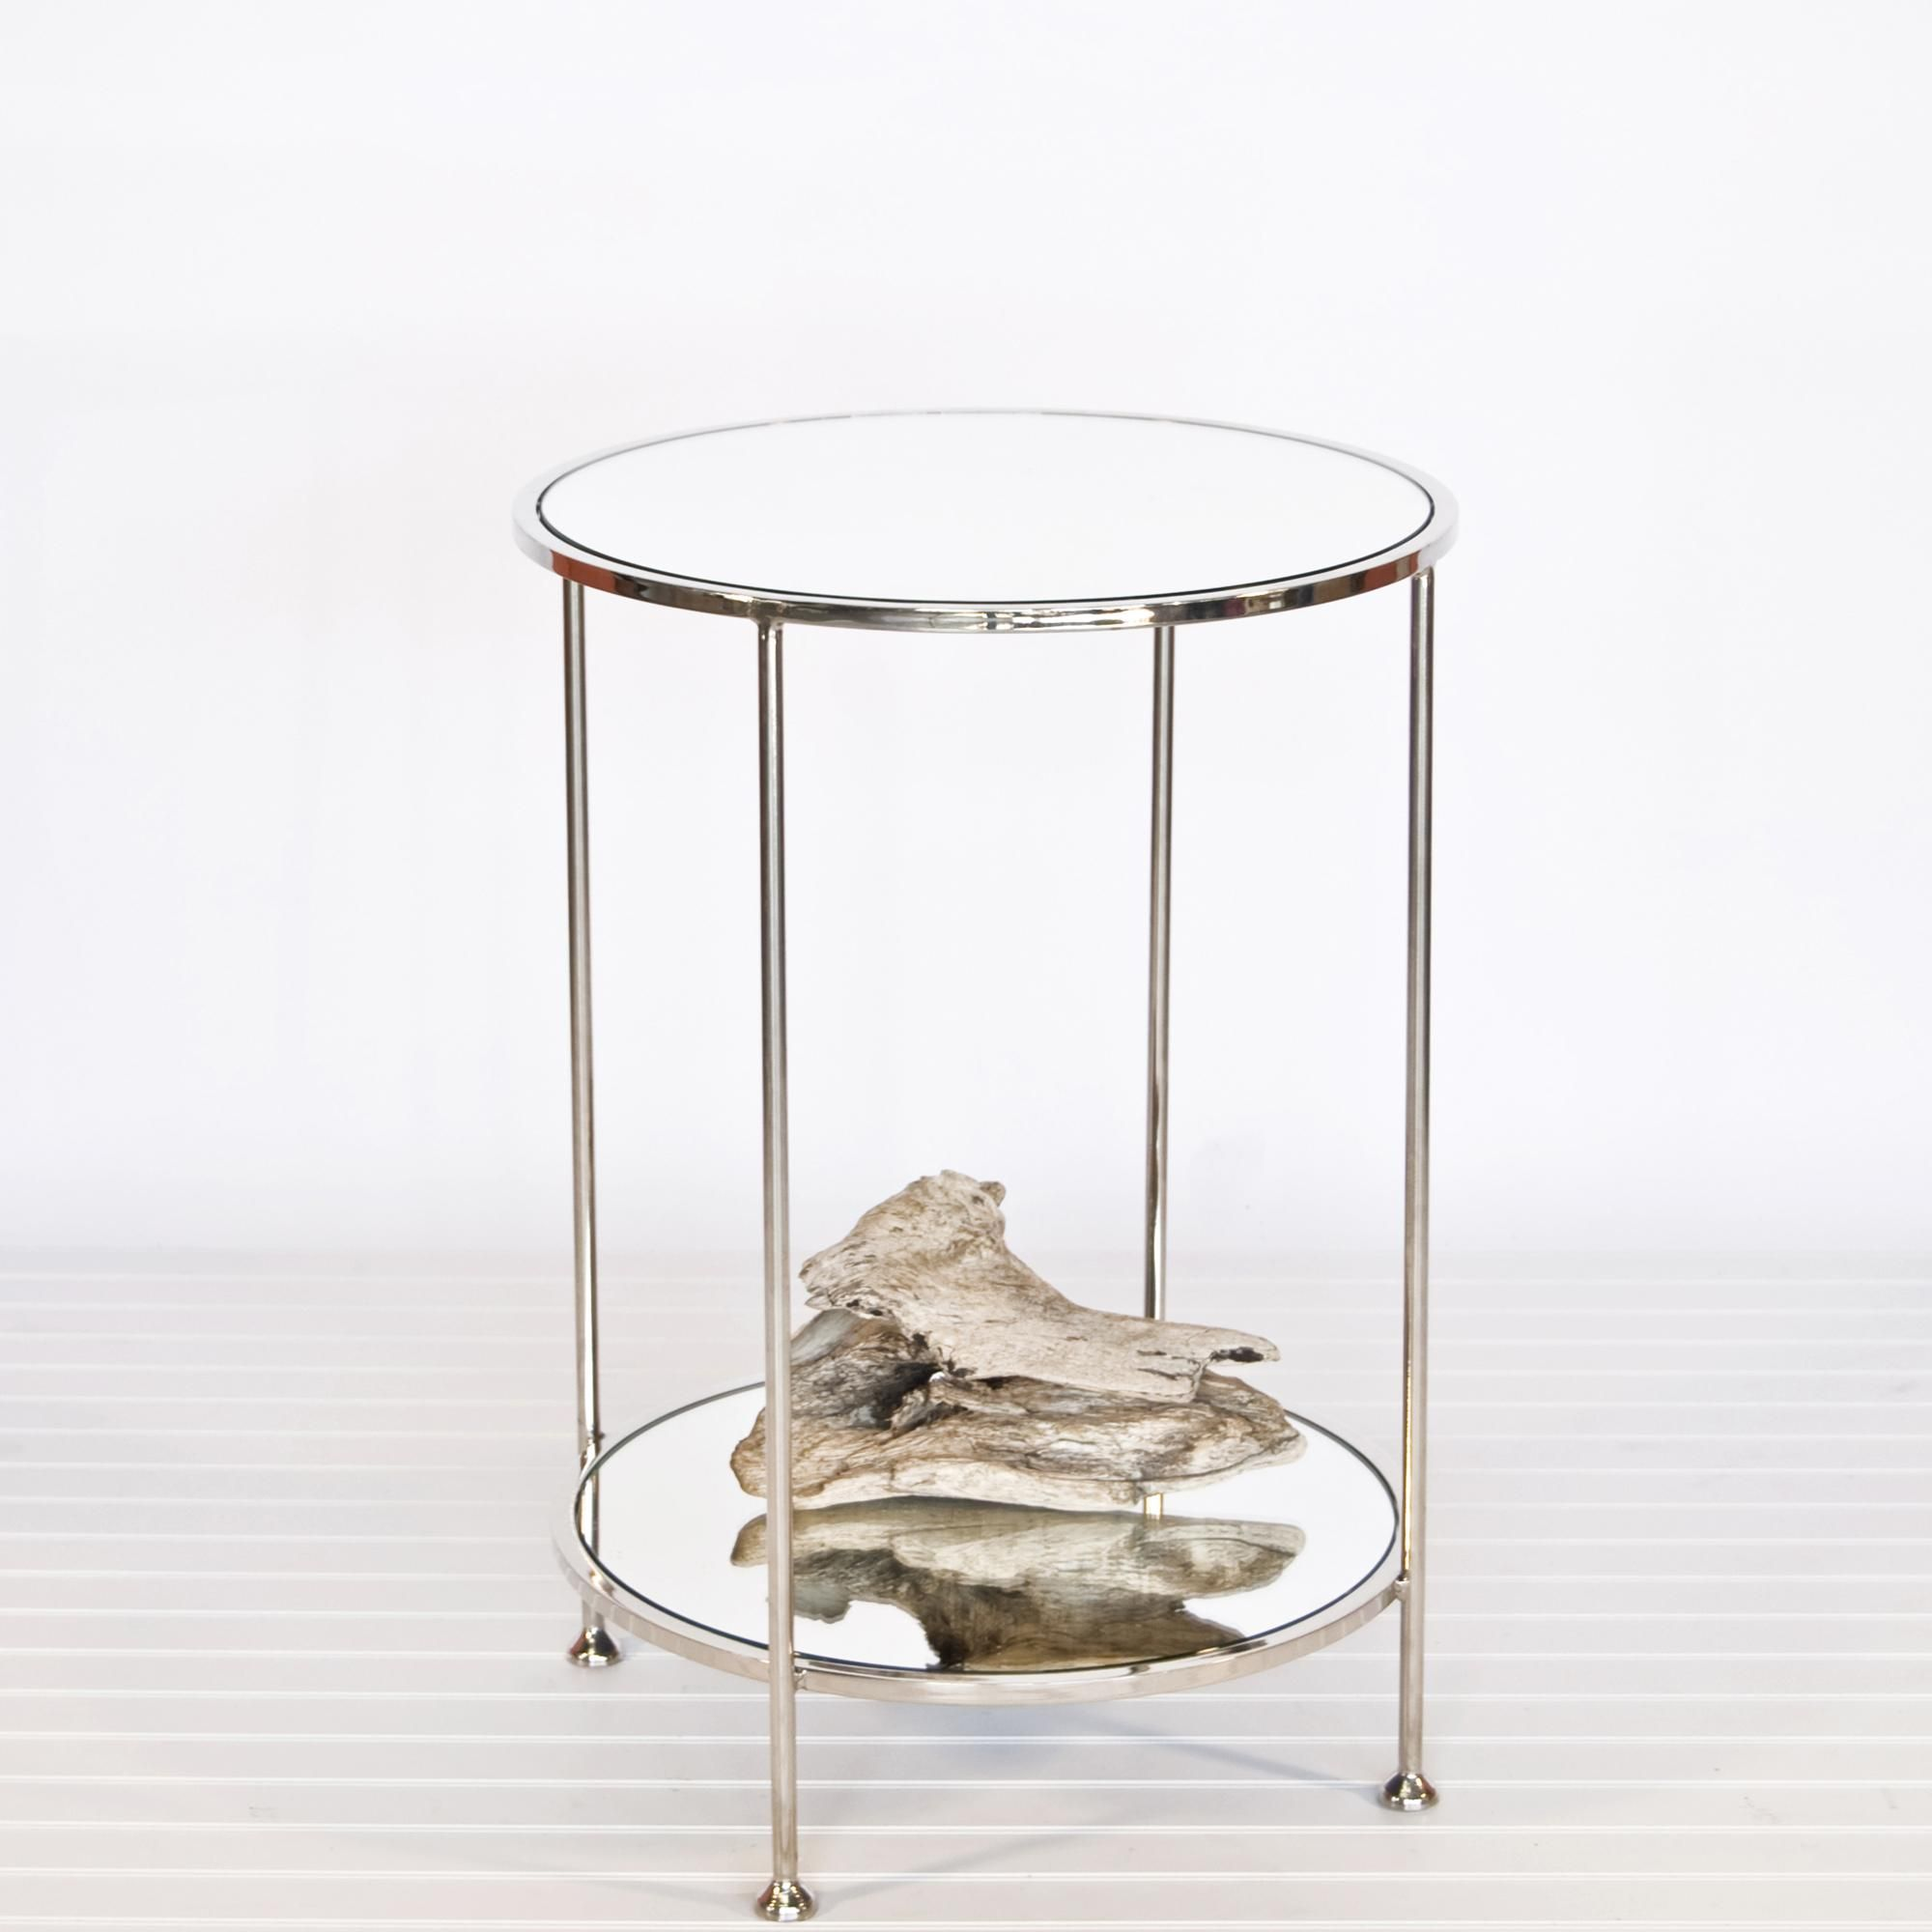 Chico Small 2 Tier Nickel Plate Side Table With Mirror Top By Worlds Away Mirrored Side Tables Side Table Table